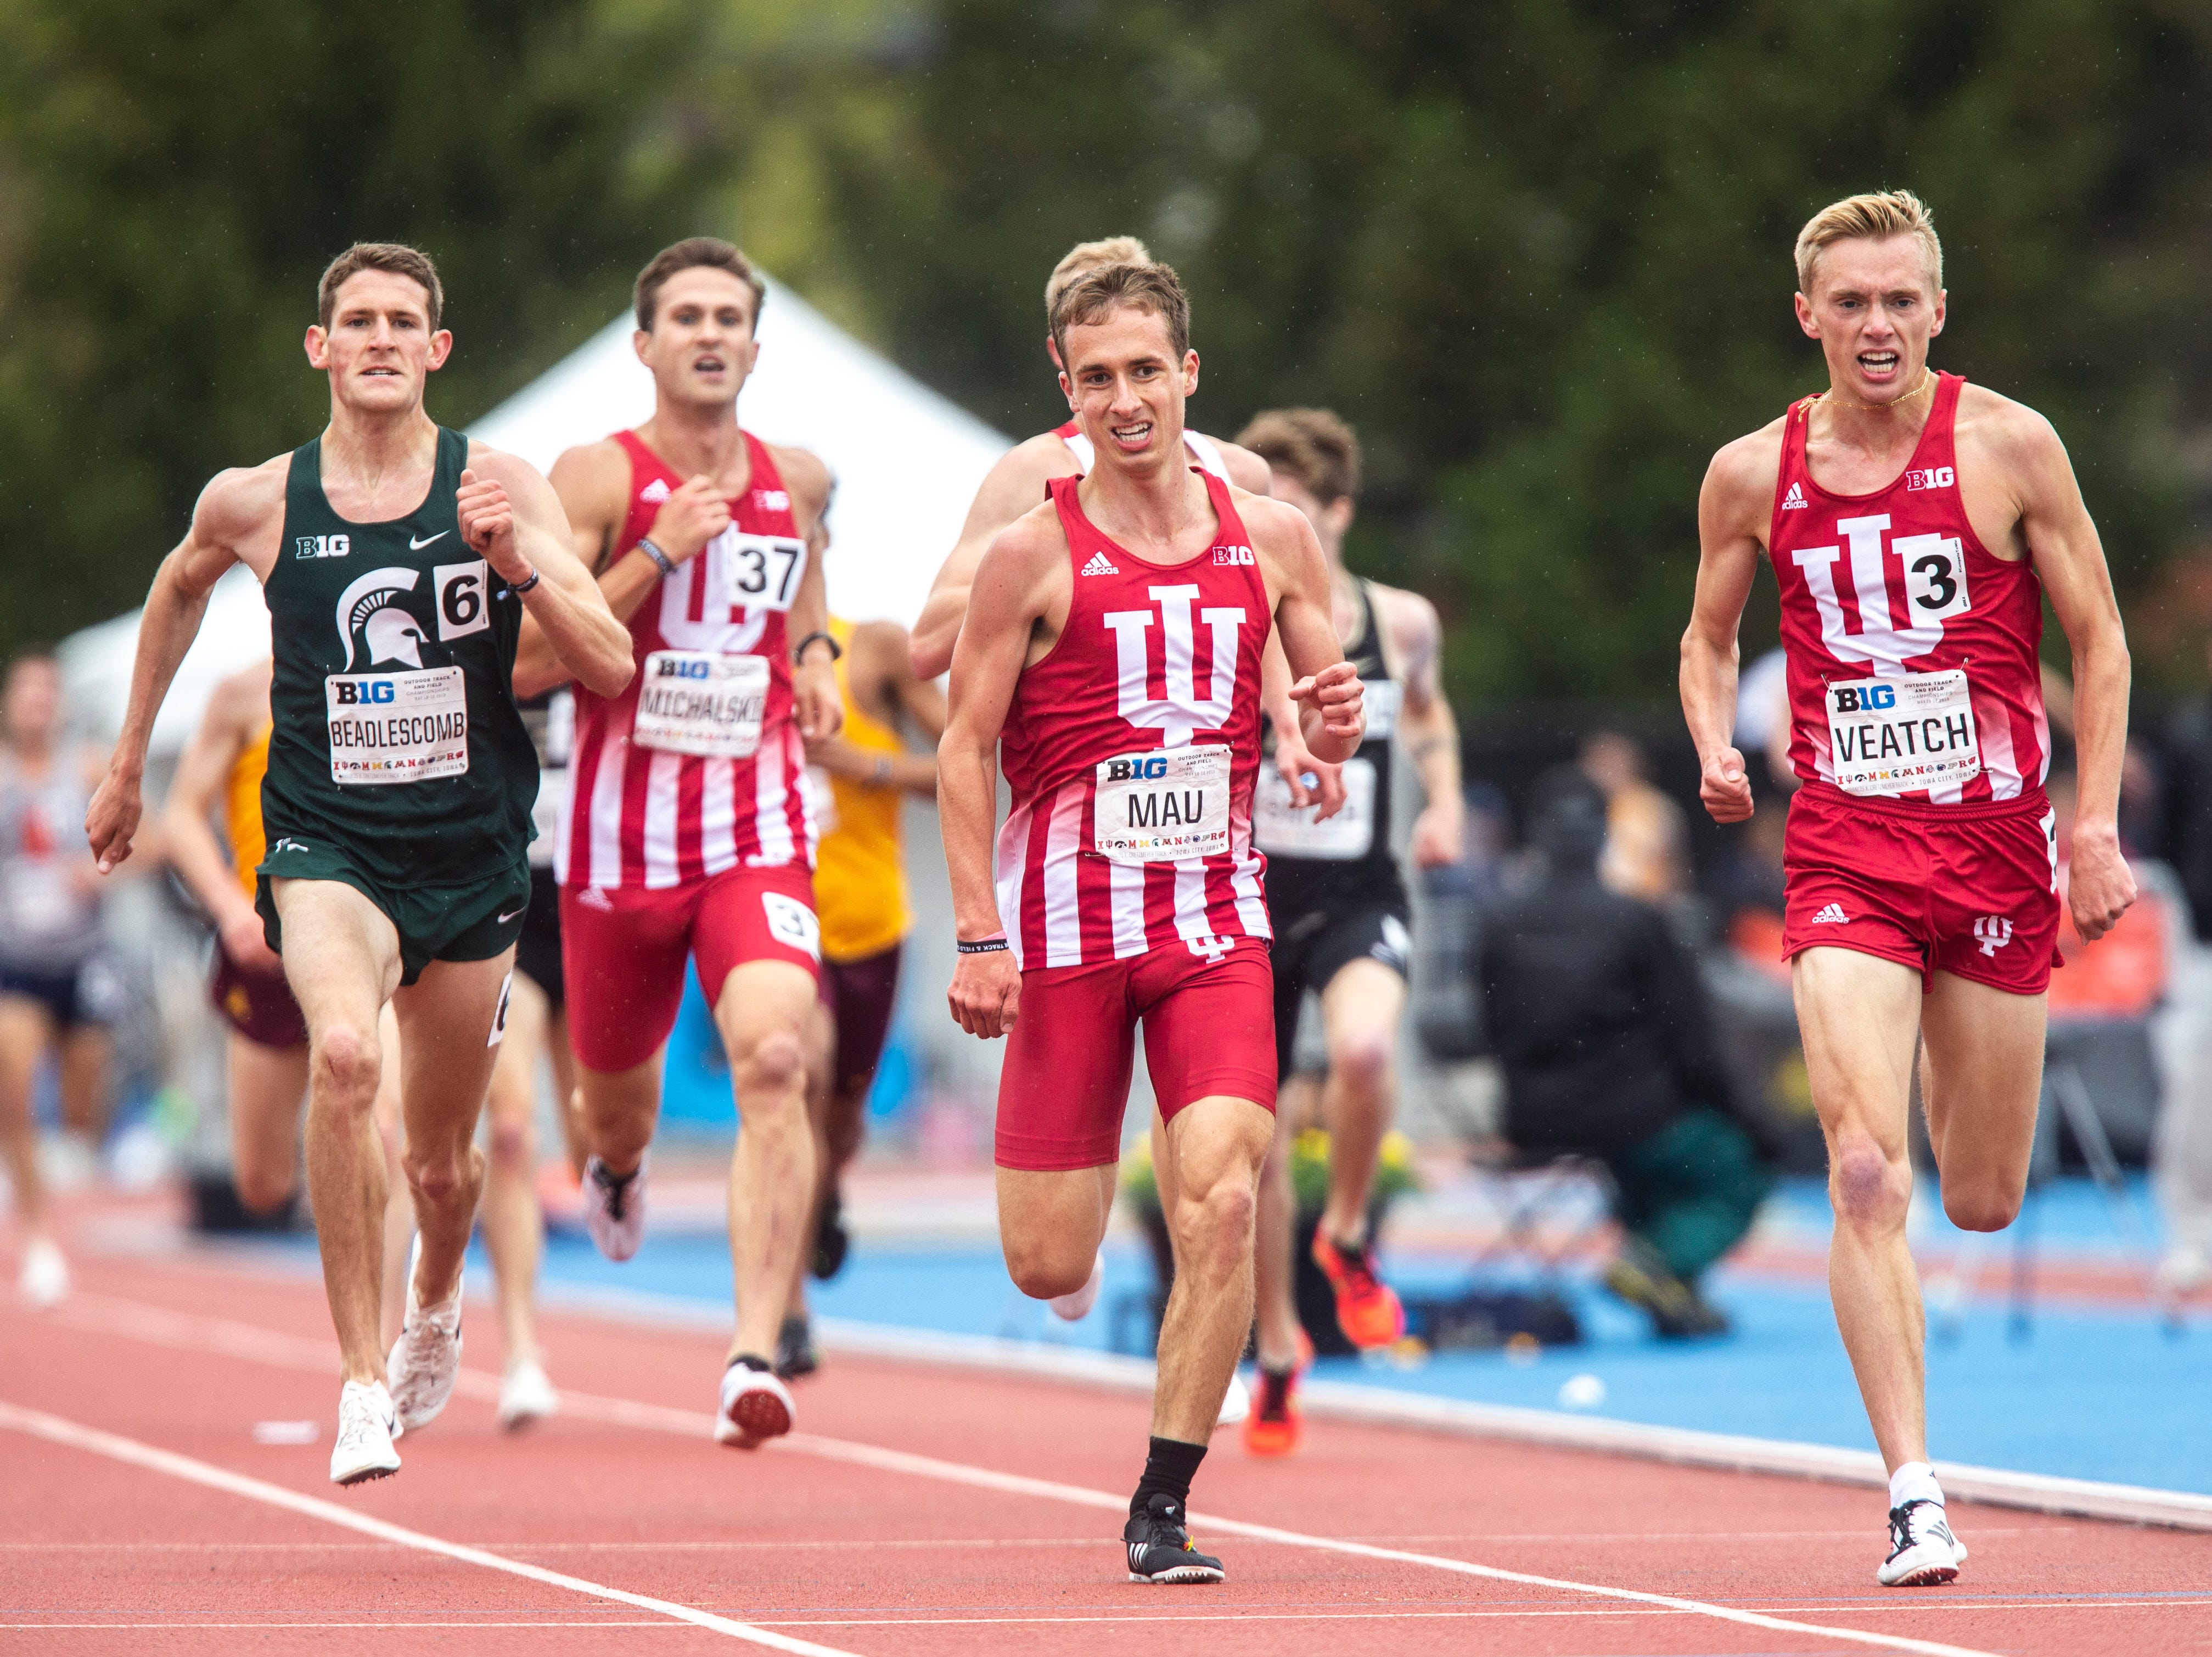 Indiana sophomore Ben Veatch, right, runs towards the finish line in the 5,000 meter final against teammate Kyle Mau during the final day of Big Ten track and field outdoor championships, Sunday, May 12, 2019, at Francis X. Cretzmeyer Track on the University of Iowa campus in Iowa City, Iowa. Veatch finished first, with a time of 14:35.45, teammate Kyle Mau finished second, with a time of 14:35.60.